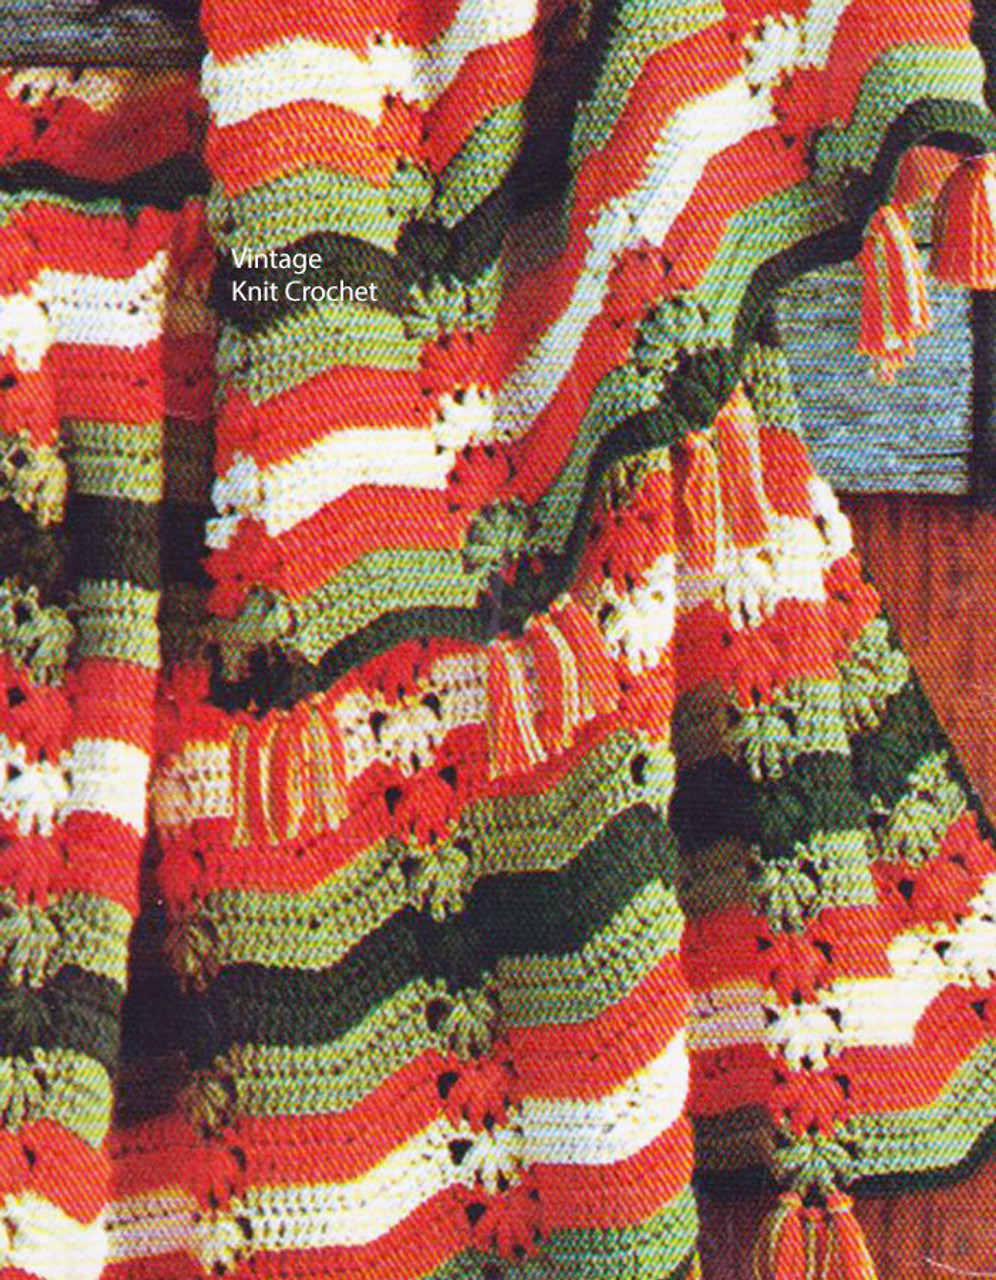 Crochet Knitting Worsted Stripe Afghan Pattern